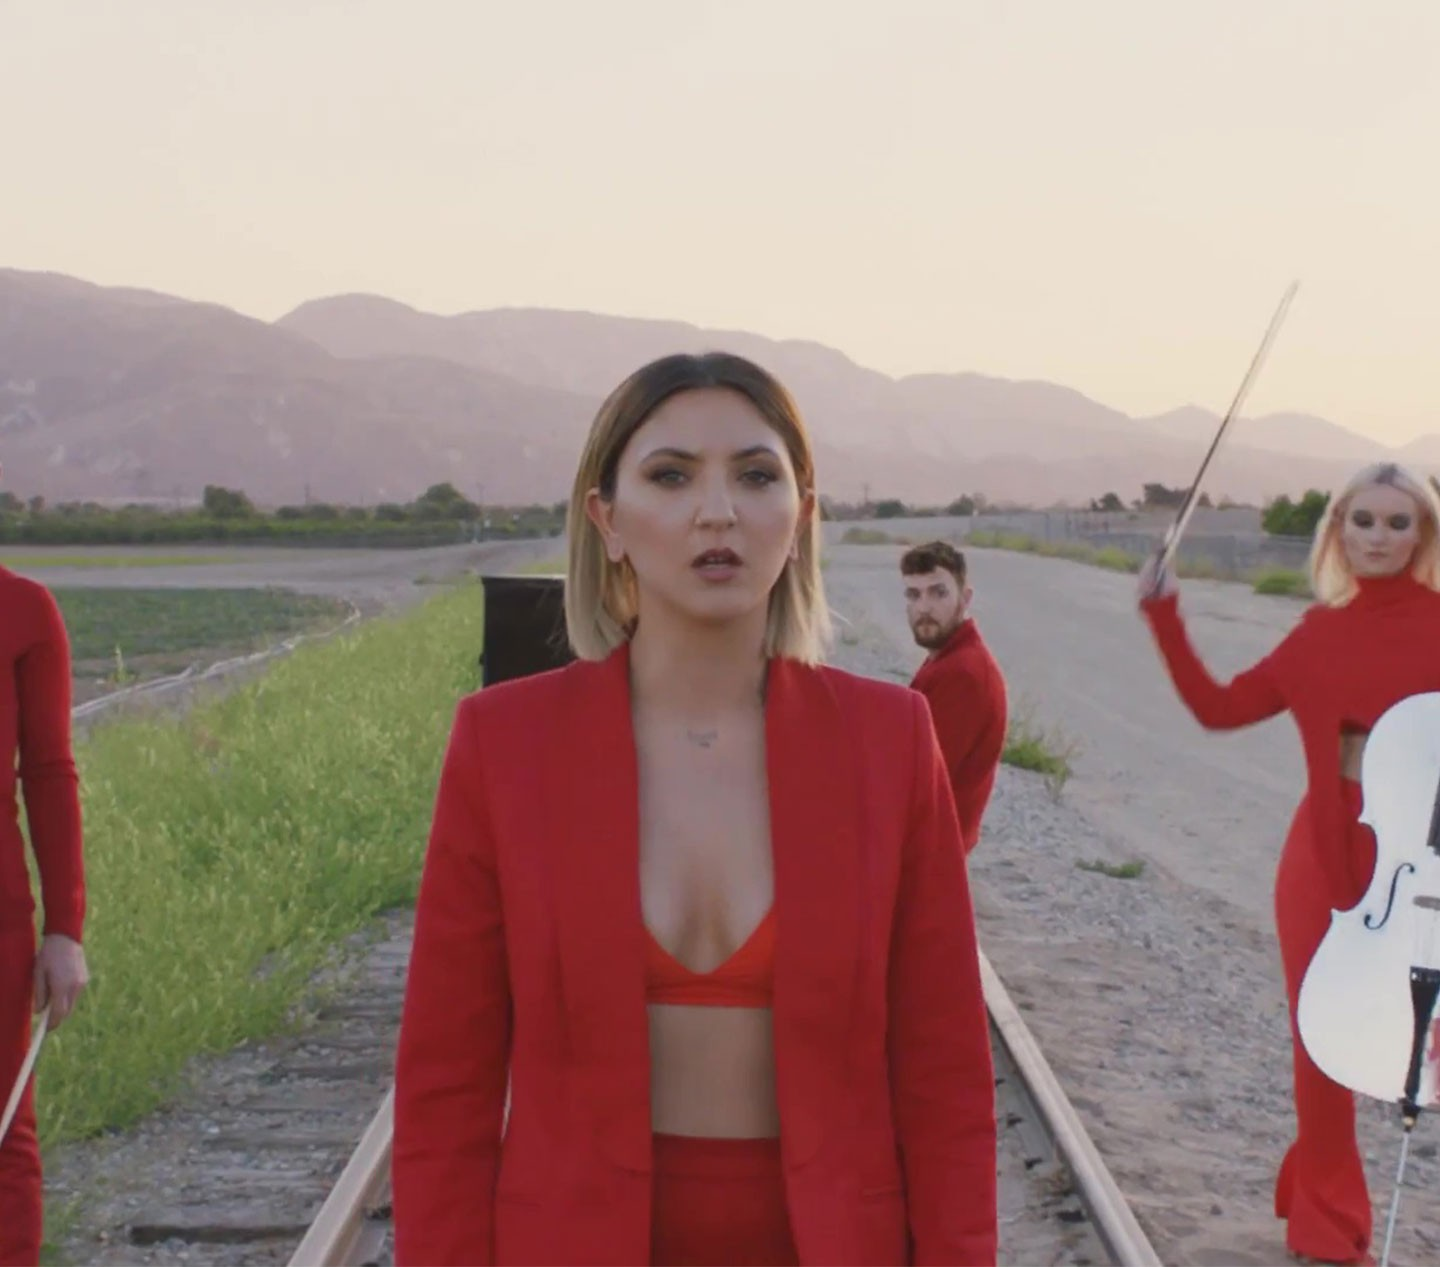 JULIA MICHAELS - Clean Bandit Video